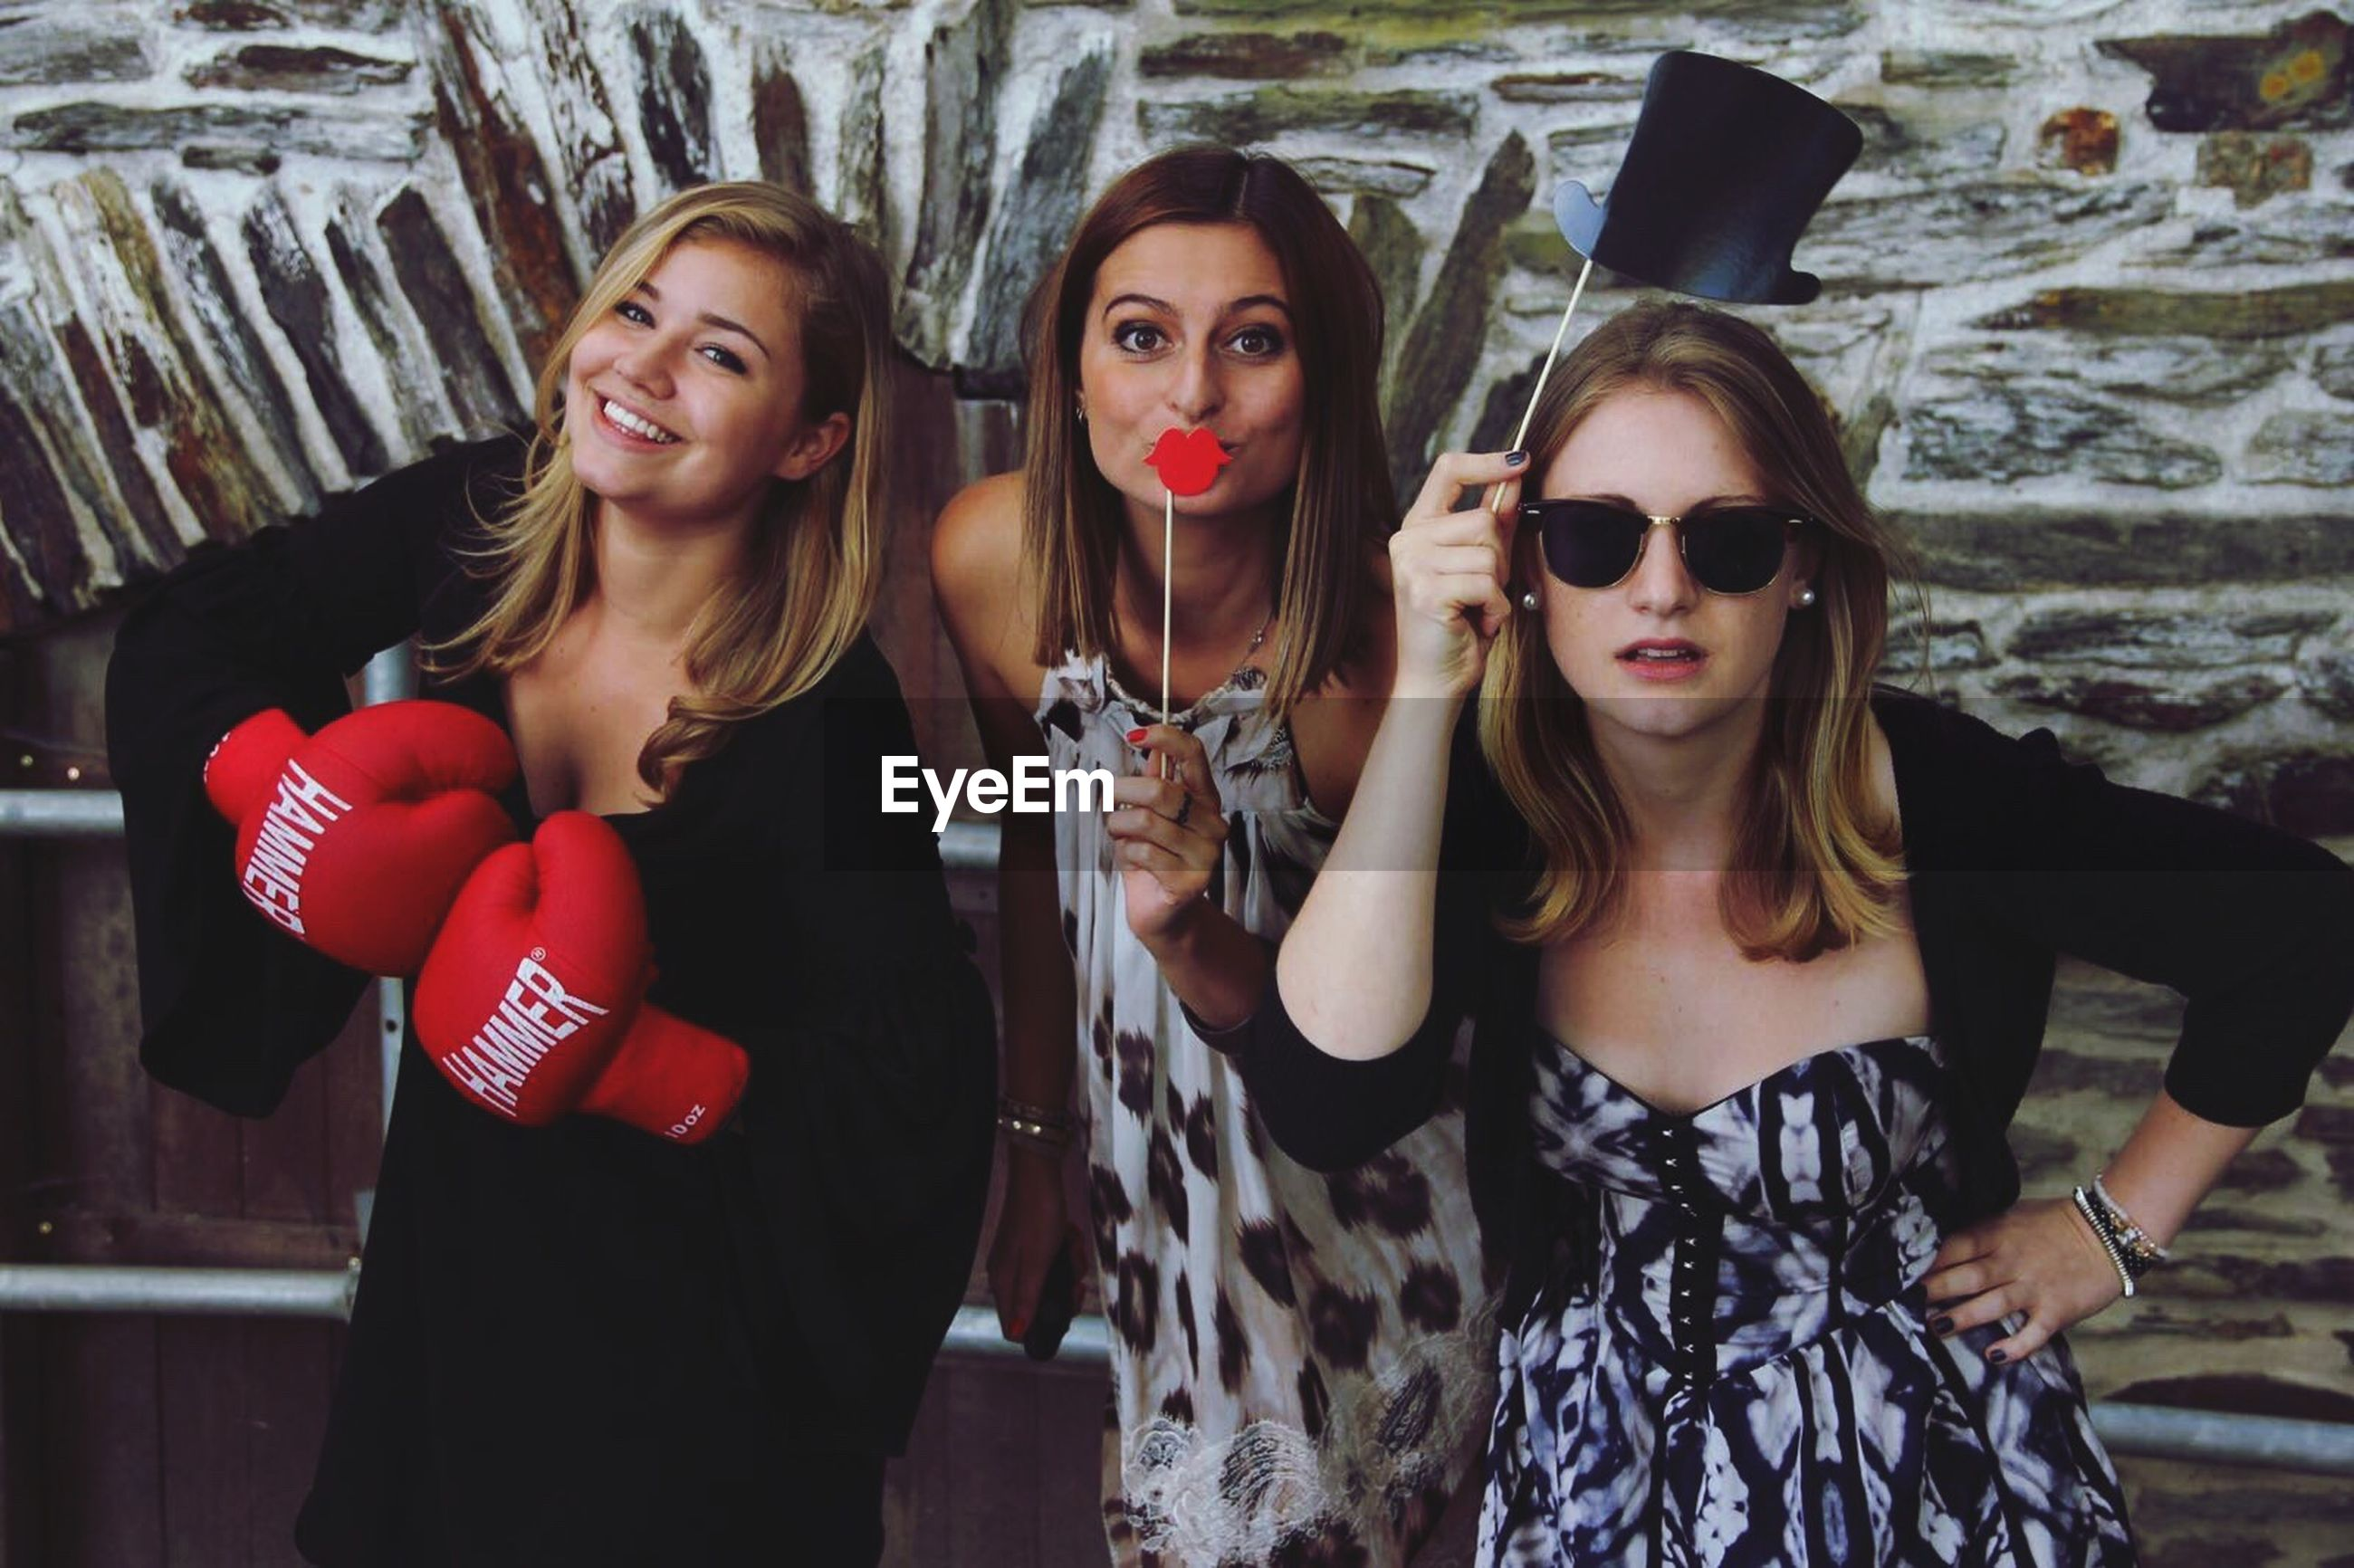 young adult, party - social event, looking at camera, adults only, portrait, nightlife, only women, young women, friendship, glamour, togetherness, fun, enjoyment, indoors, people, selfie, women, adult, ladies' night, night, nightclub, happiness, smiling, cheerful